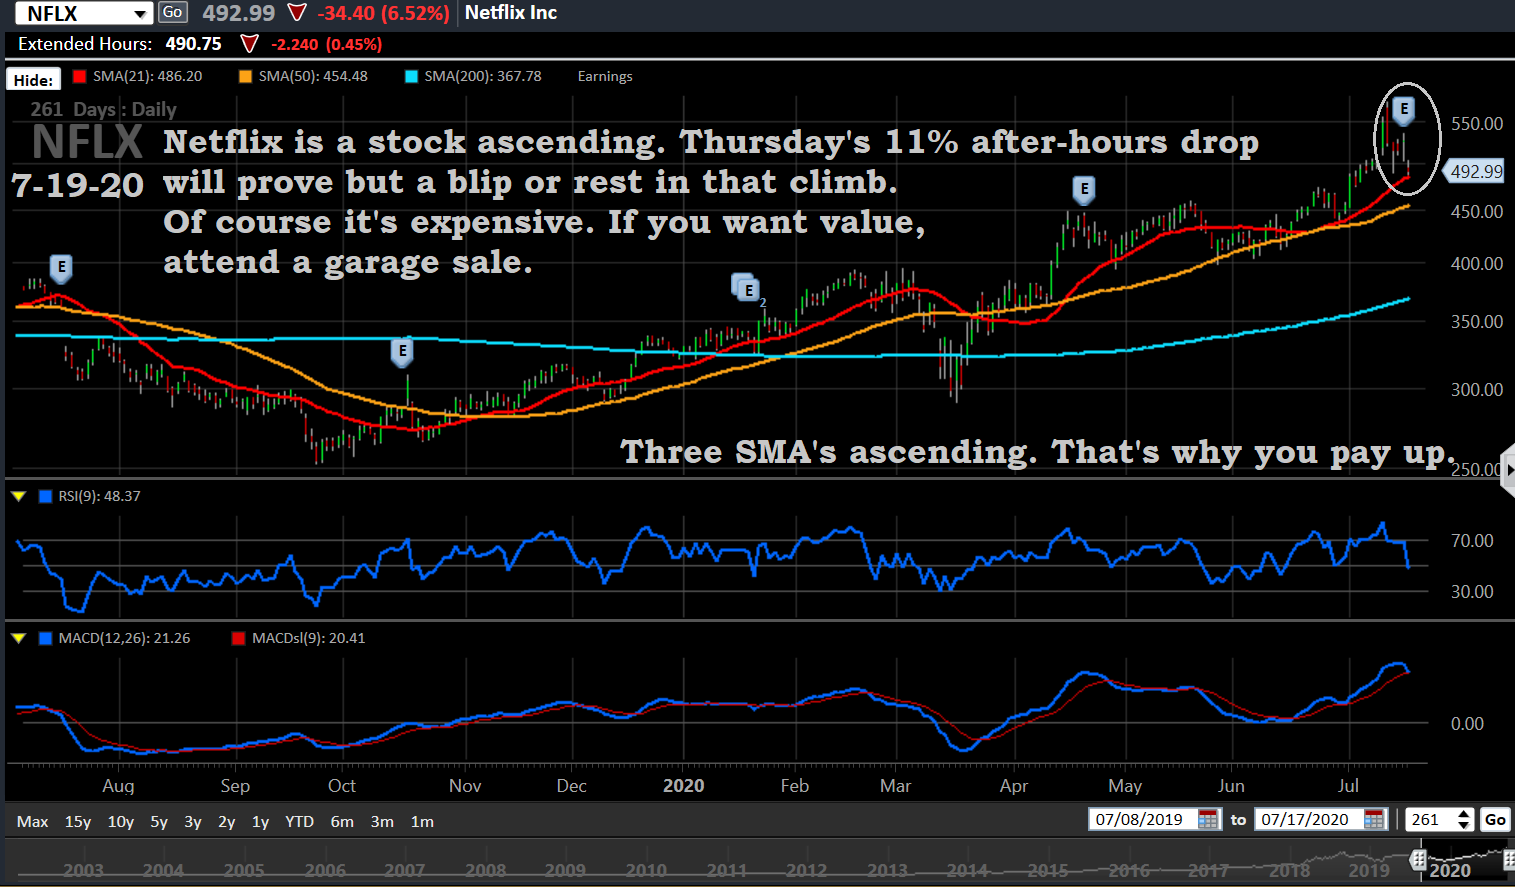 NFLX, 7-19-20, Daily